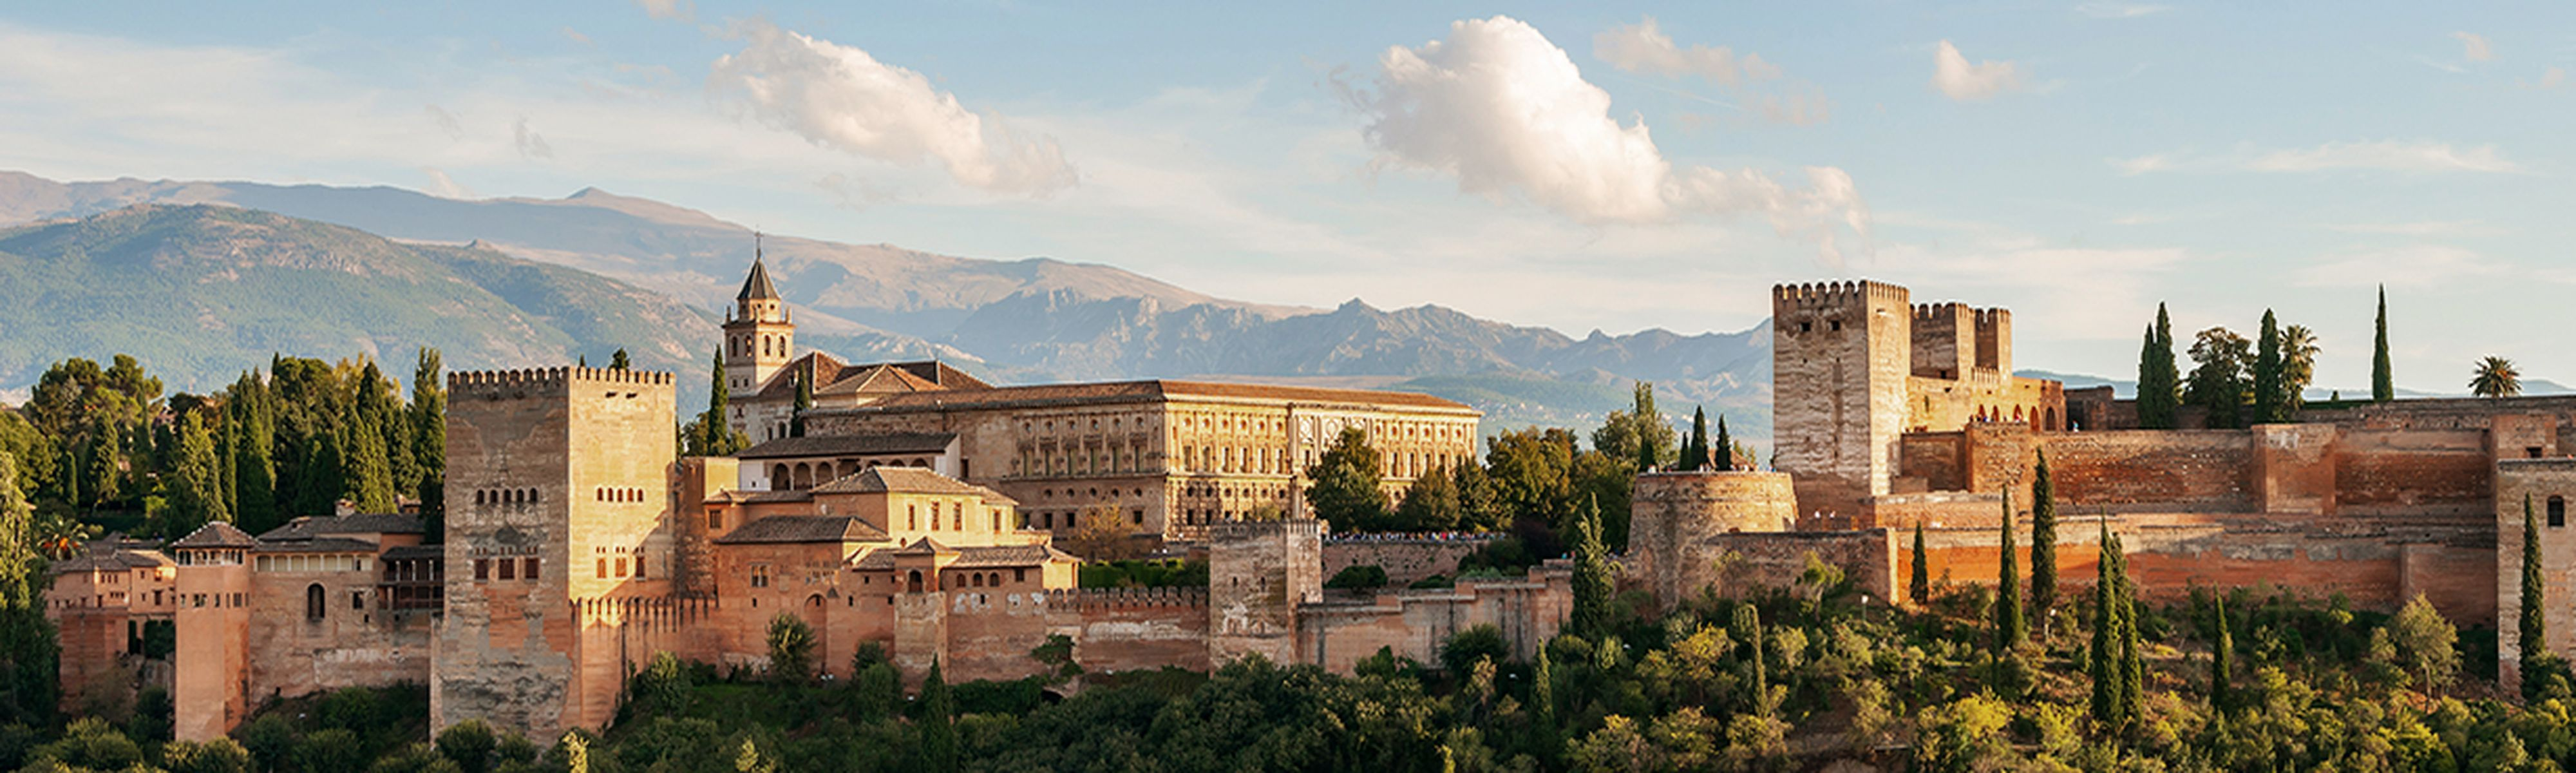 Alhambra of Granada, Spain on sunny day